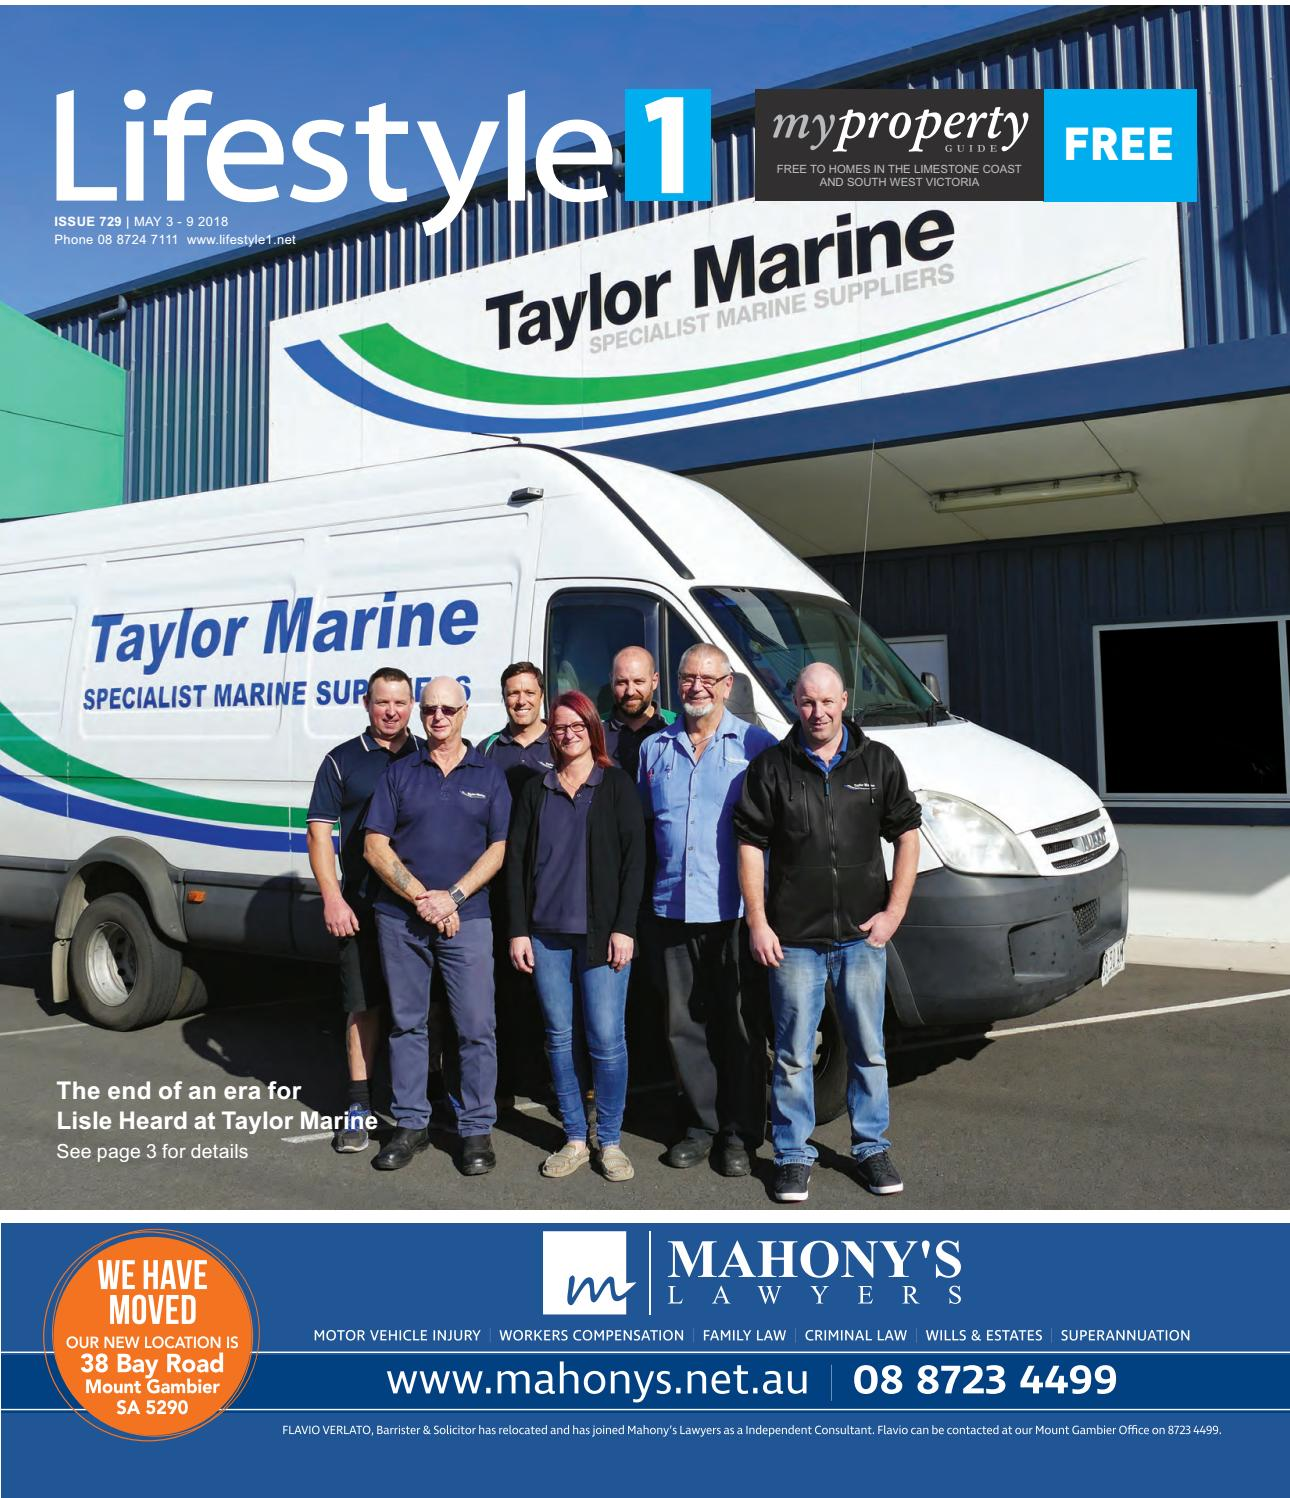 Lifestyle 1 issue 729 by Lifestyle1 issuu